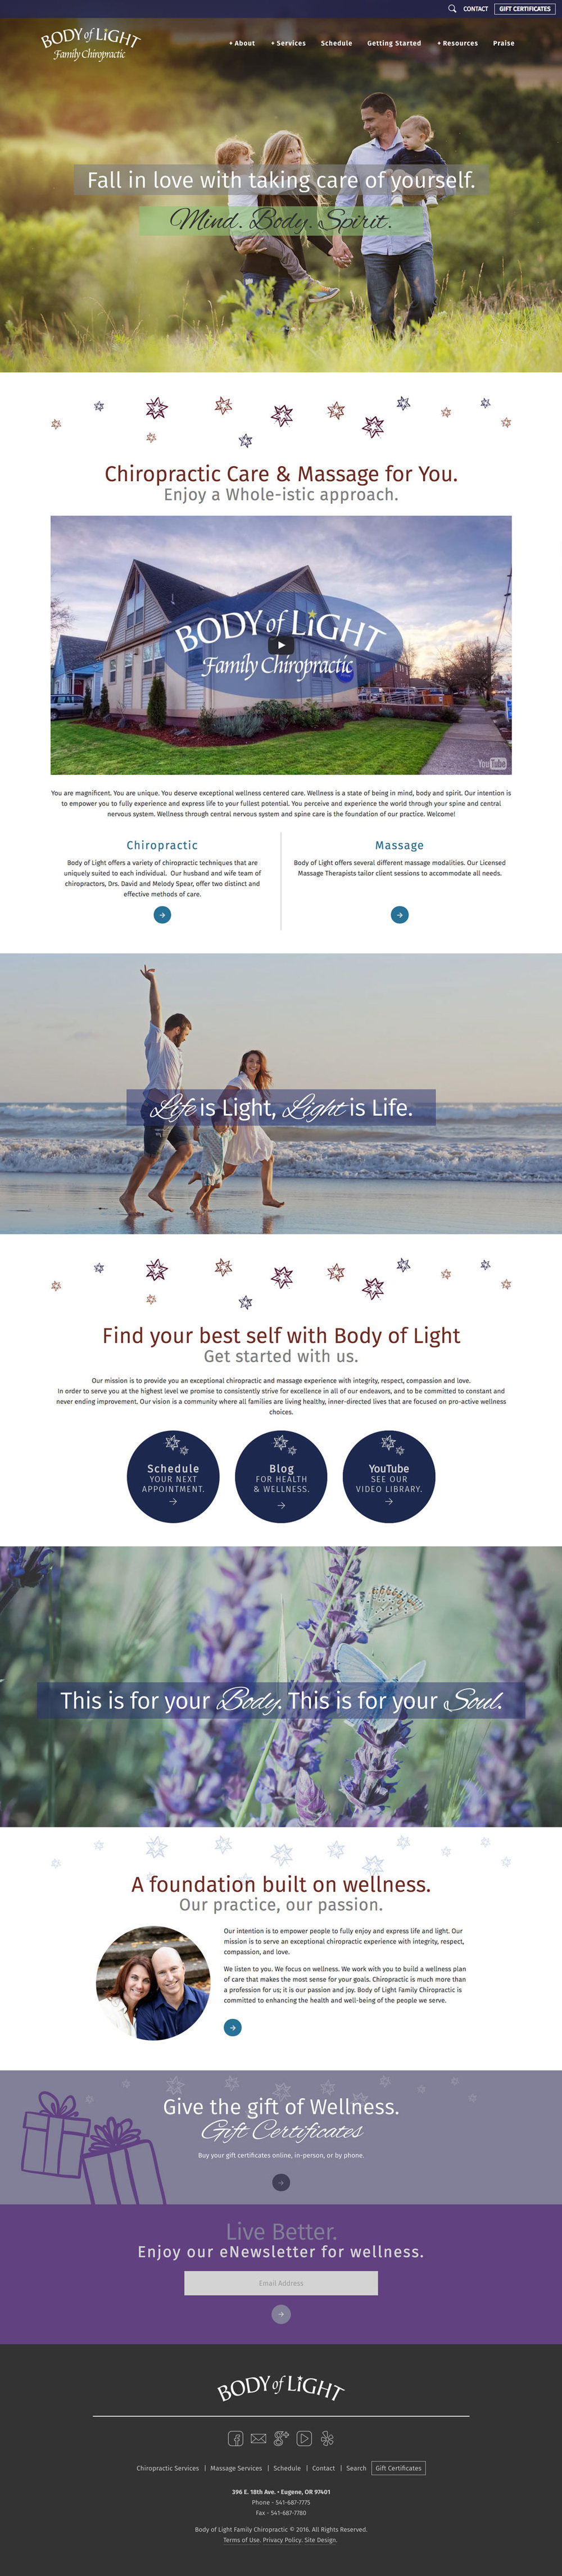 Body-of-Light-homepage.jpg